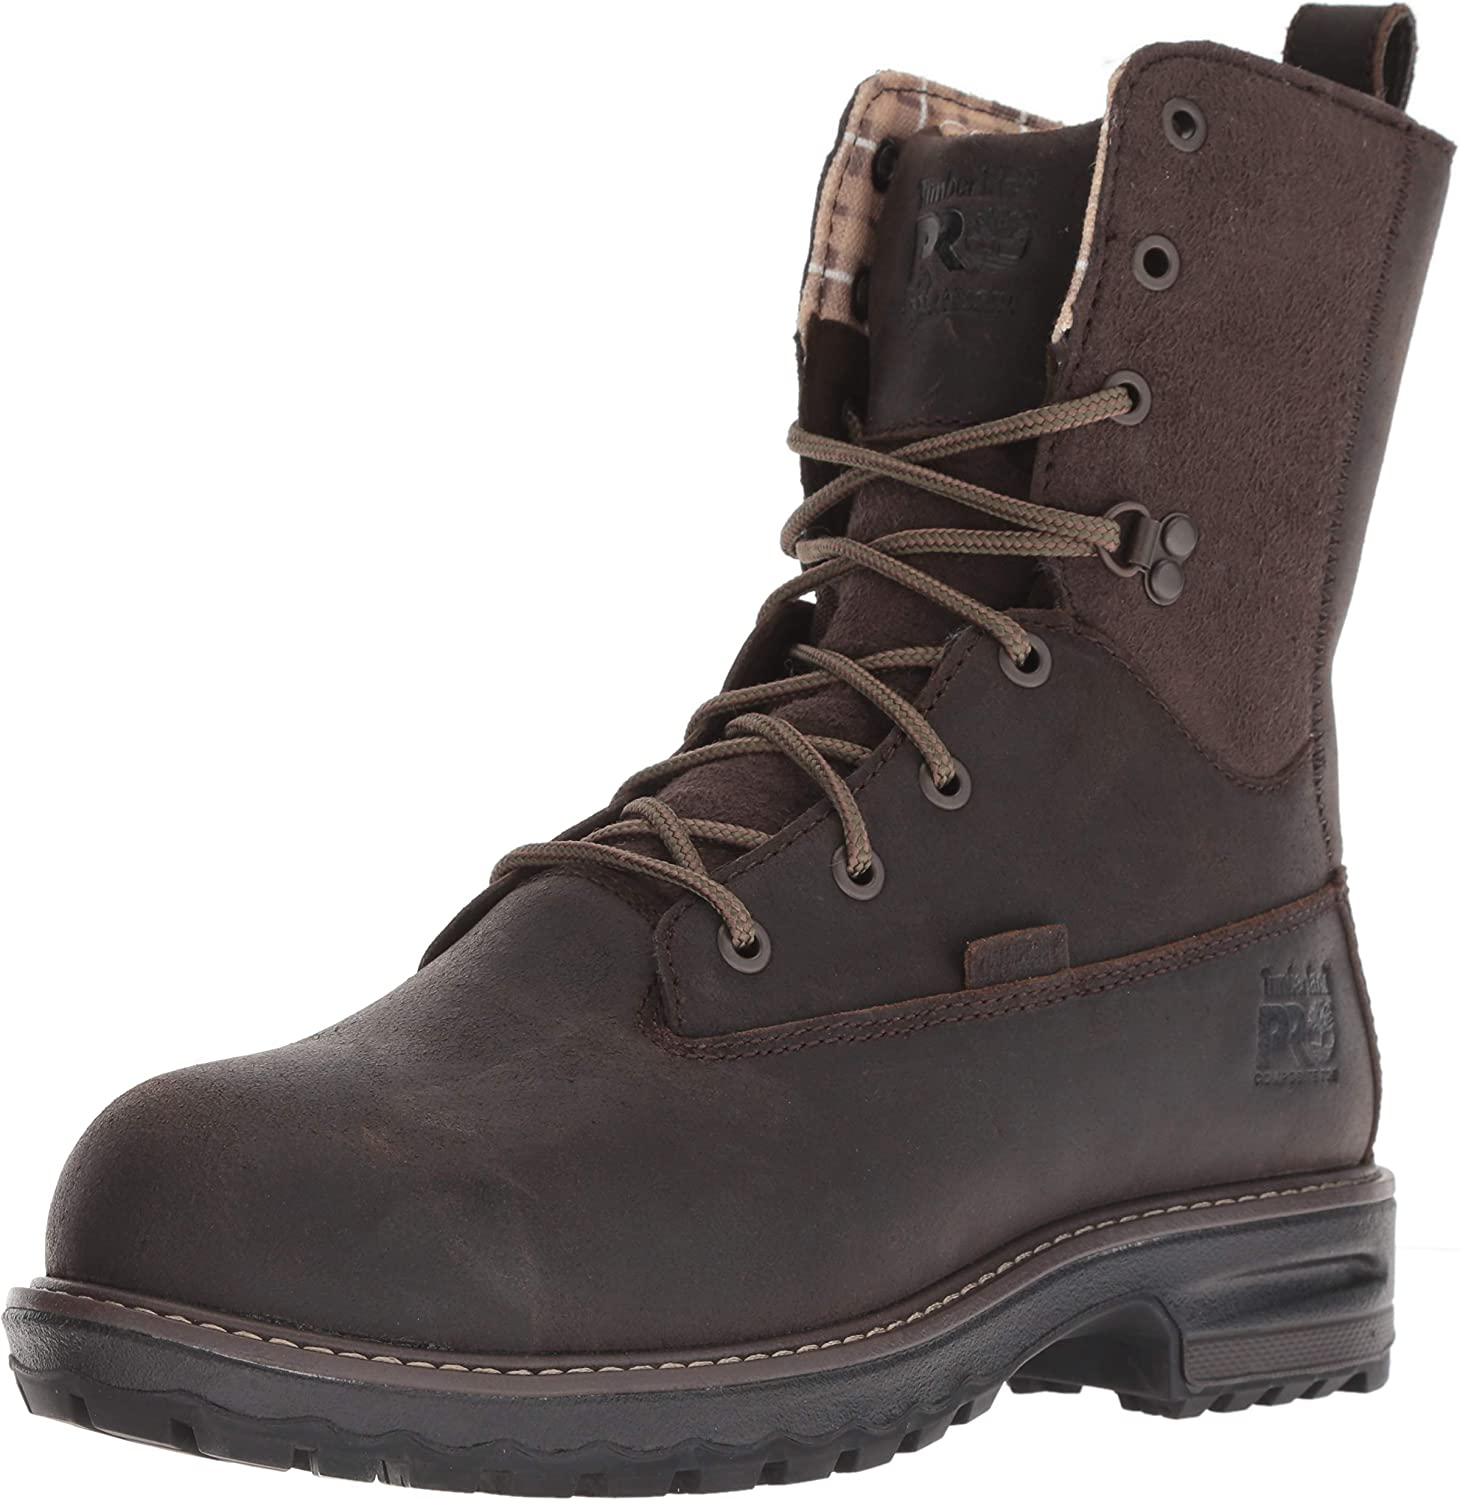 "Timberland PRO Women's Hightower 8"" Composite Toe Waterproof Insulated Industrial Boot"